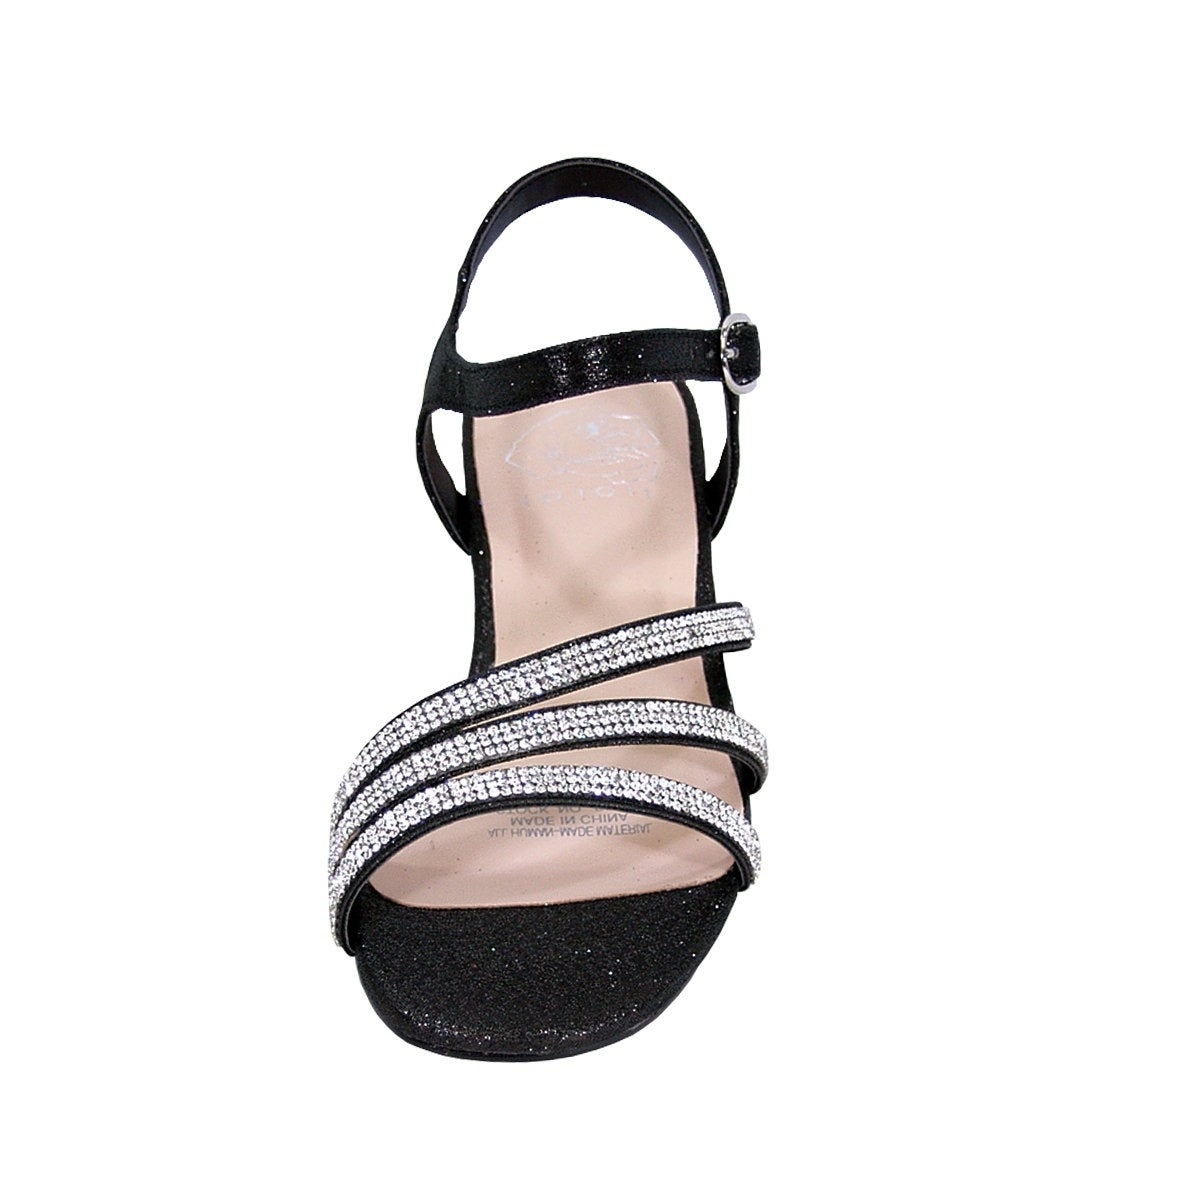 343c255a443c Shop FLORAL Jenna Women Extra Wide Width Glittery Rhinestone Straps Sandals  - Free Shipping Today - Overstock - 20005084